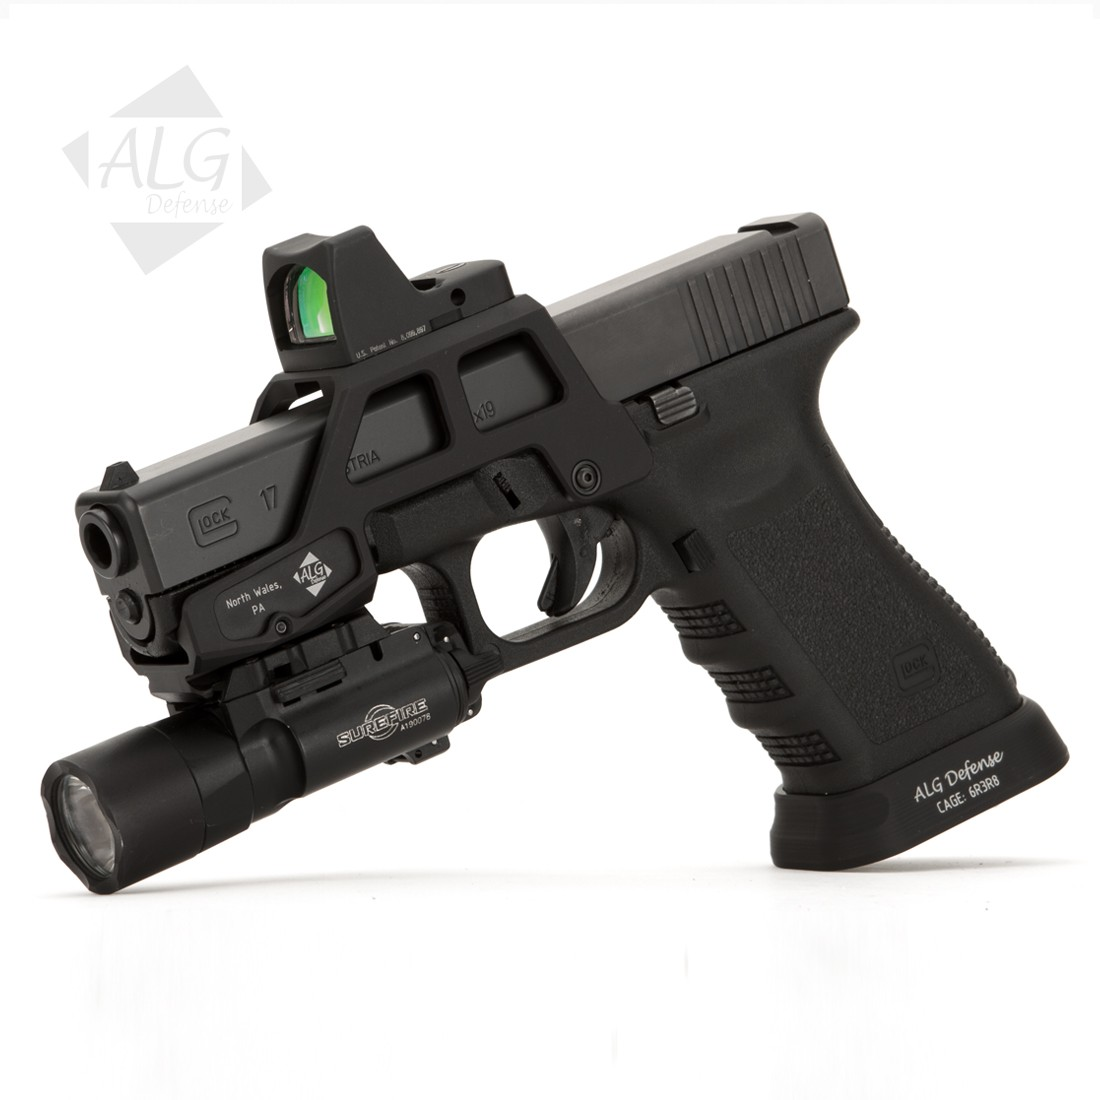 ALG 6-Second Mount - RMR